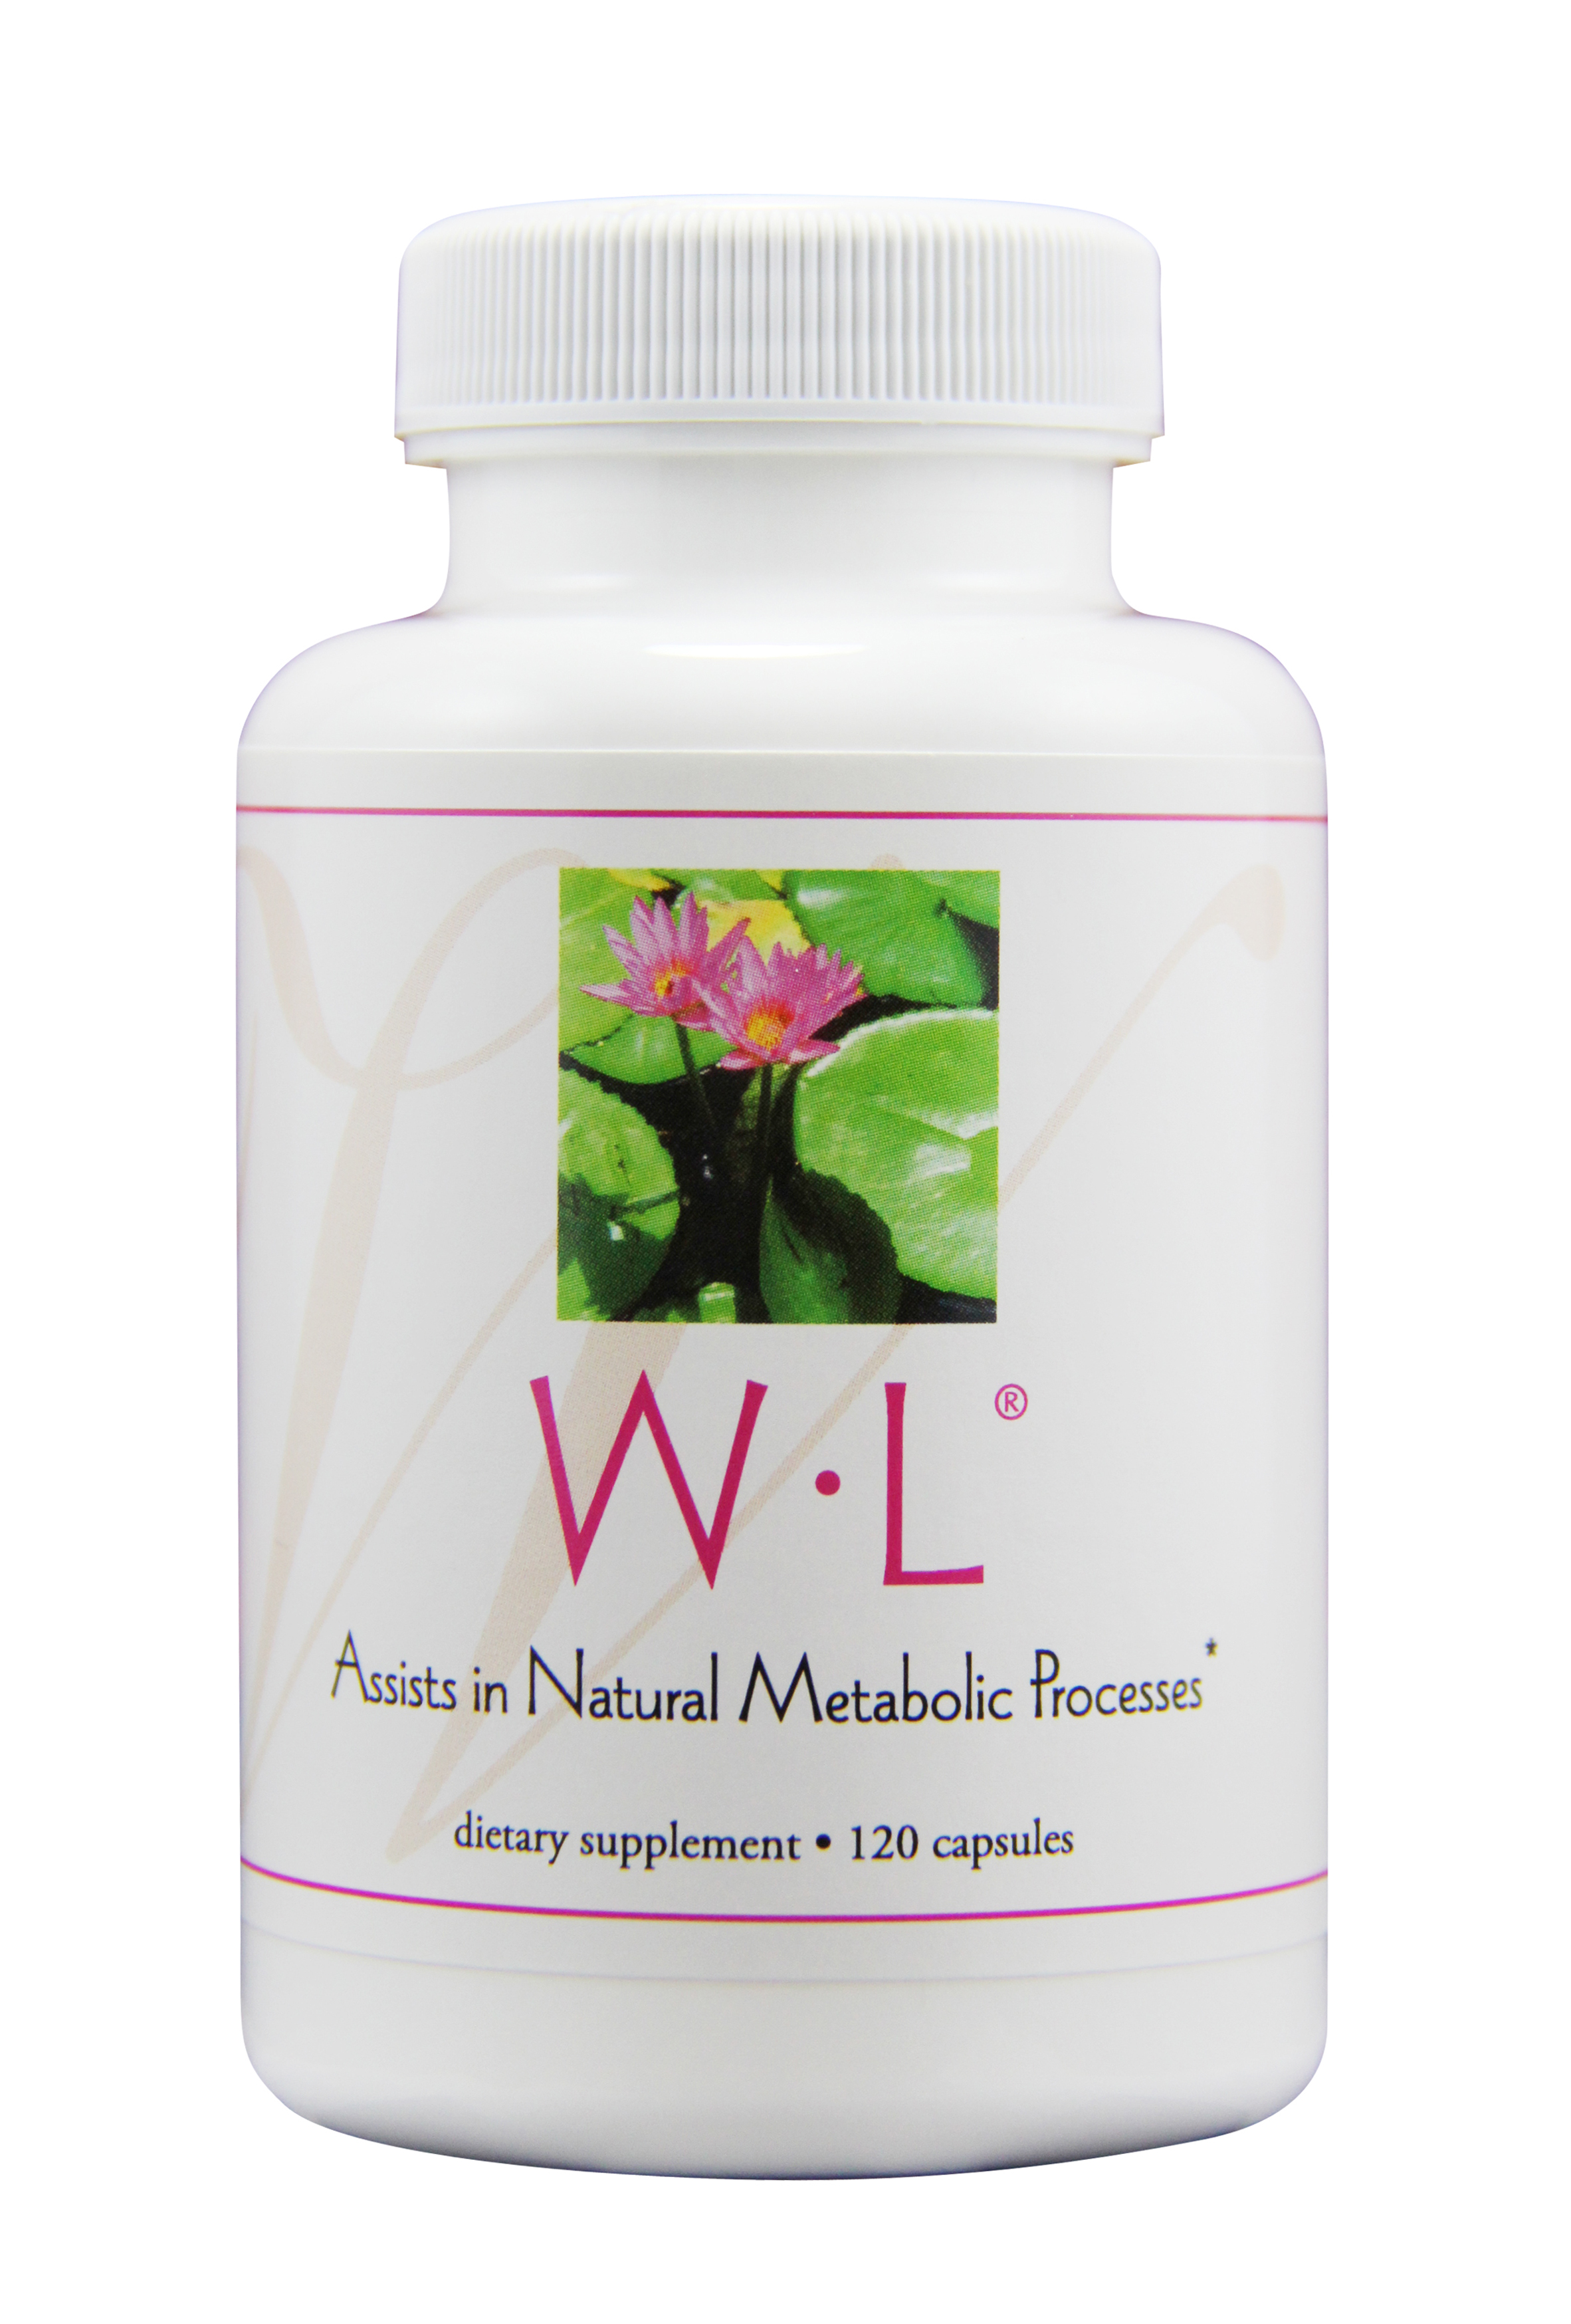 w•l - SLIMMING, BOTANICAL INGREDIENTS THAT HELP TO SUPPORT A HEALTHY METABOLIC PROCESS*Featured Ingredients: Chinese Hawthorn Fruit, Black Soybean, Sacred Lotus Leaf